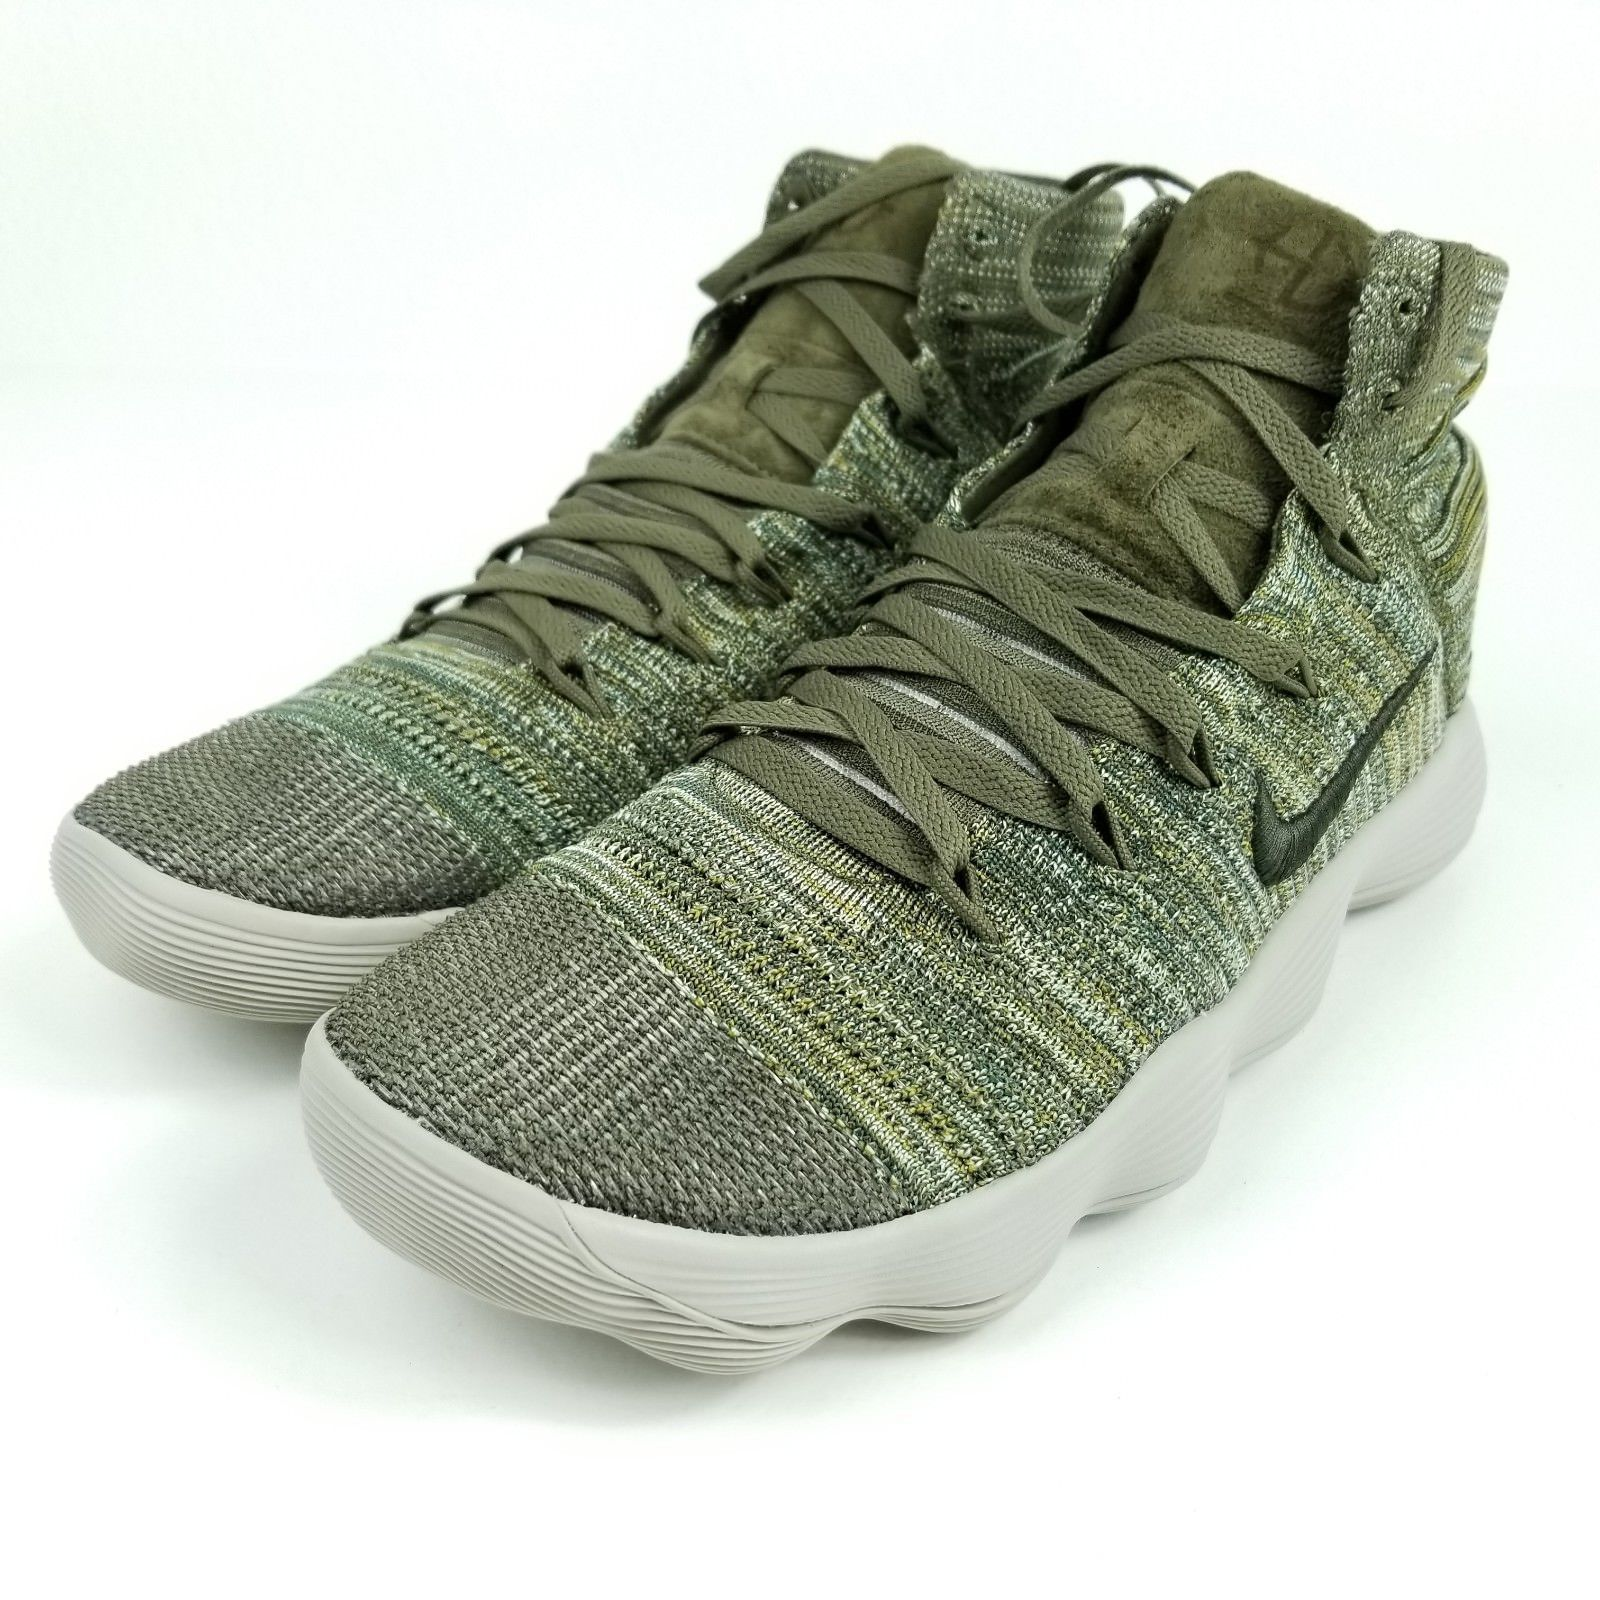 9af7f2de1cf8 Nike Hyperdunk 2017 Flyknit NL Cargo Khaki and 49 similar items. 57